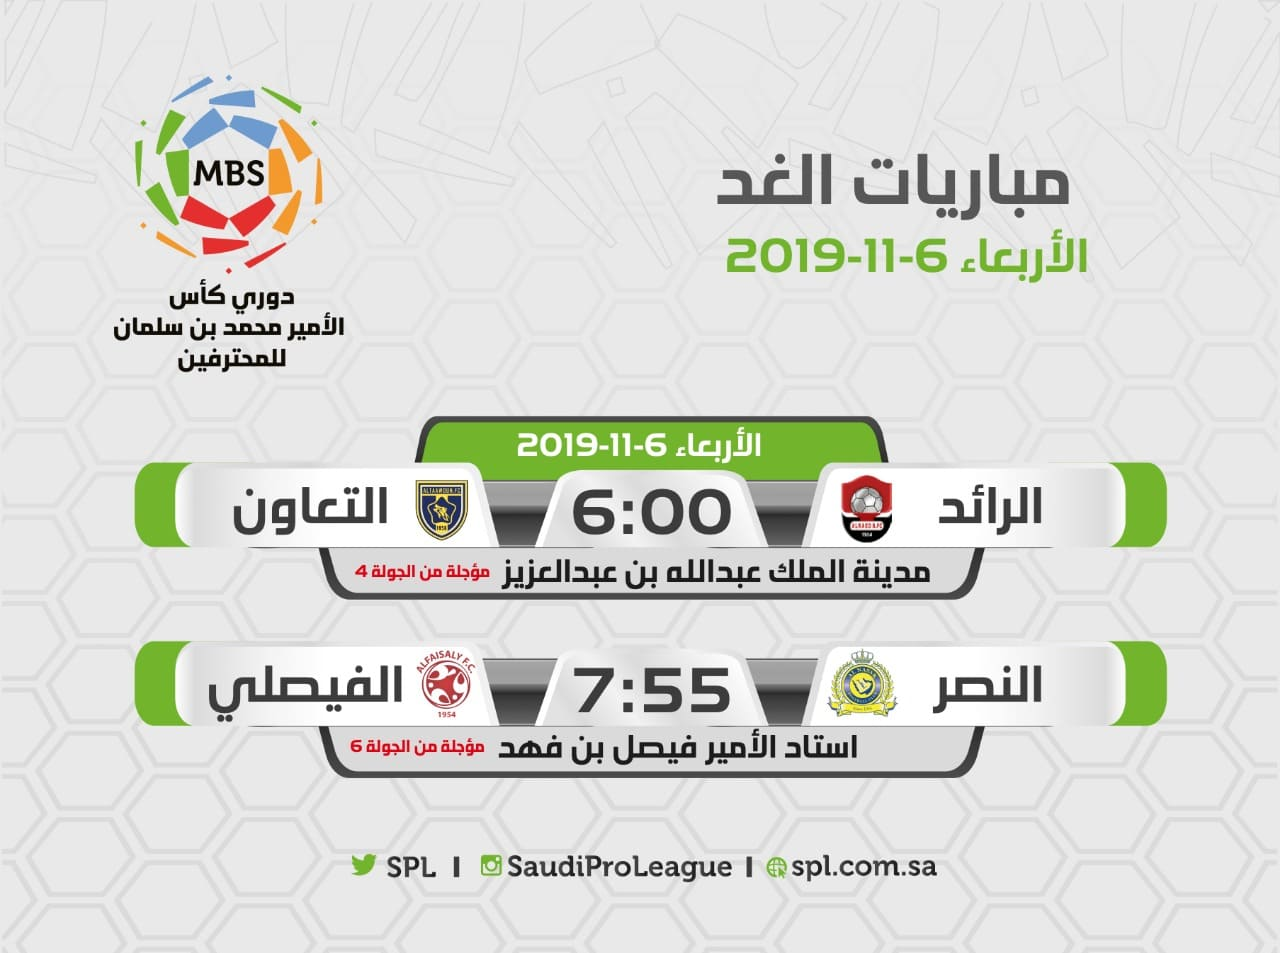 MBS Professionals Cup League postponed matches.. Al-Nassr face Al-Faisaly, Al-Raed take on Al-Taawoun in Al-Qassim derby